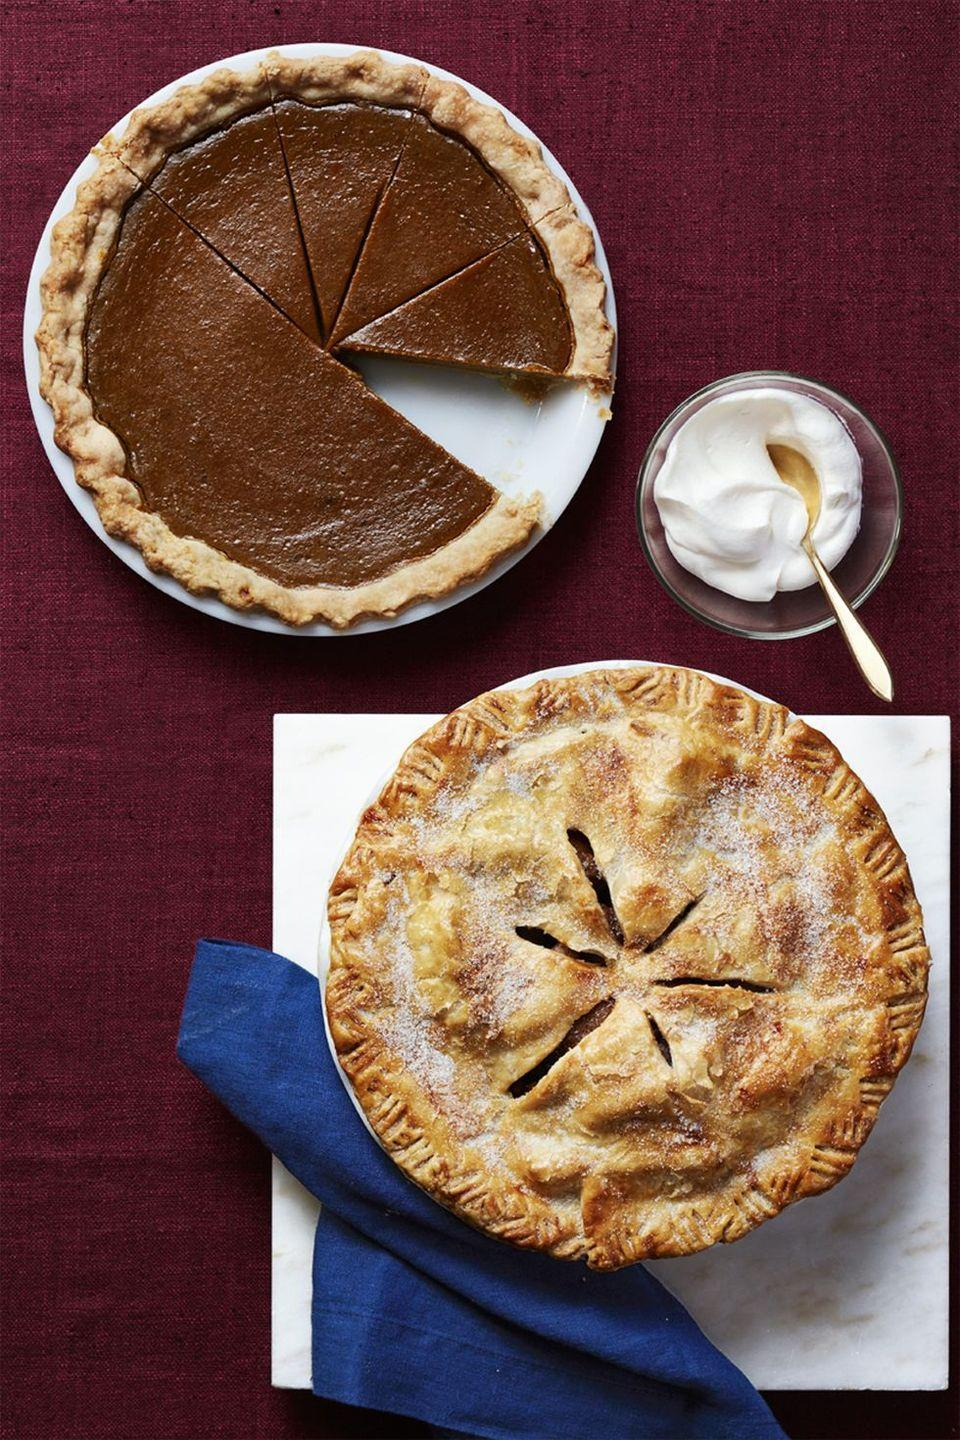 """<p>This treat uses all the flavors of <a href=""""https://www.goodhousekeeping.com/food-recipes/dessert/a29439992/apple-pie-with-cheddar-cheese-crust-recipe/"""" rel=""""nofollow noopener"""" target=""""_blank"""" data-ylk=""""slk:apple pie"""" class=""""link rapid-noclick-resp"""">apple pie</a> (think: lots of cinnamon and nutmeg) but swaps in pears for the typical fall fruit. We promise, you won't mind!</p><p><em><a href=""""https://www.womansday.com/food-recipes/food-drinks/recipes/a56477/pear-pie-recipe/"""" rel=""""nofollow noopener"""" target=""""_blank"""" data-ylk=""""slk:Get the recipe from Woman's Day »"""" class=""""link rapid-noclick-resp"""">Get the recipe from Woman's Day »</a></em></p>"""